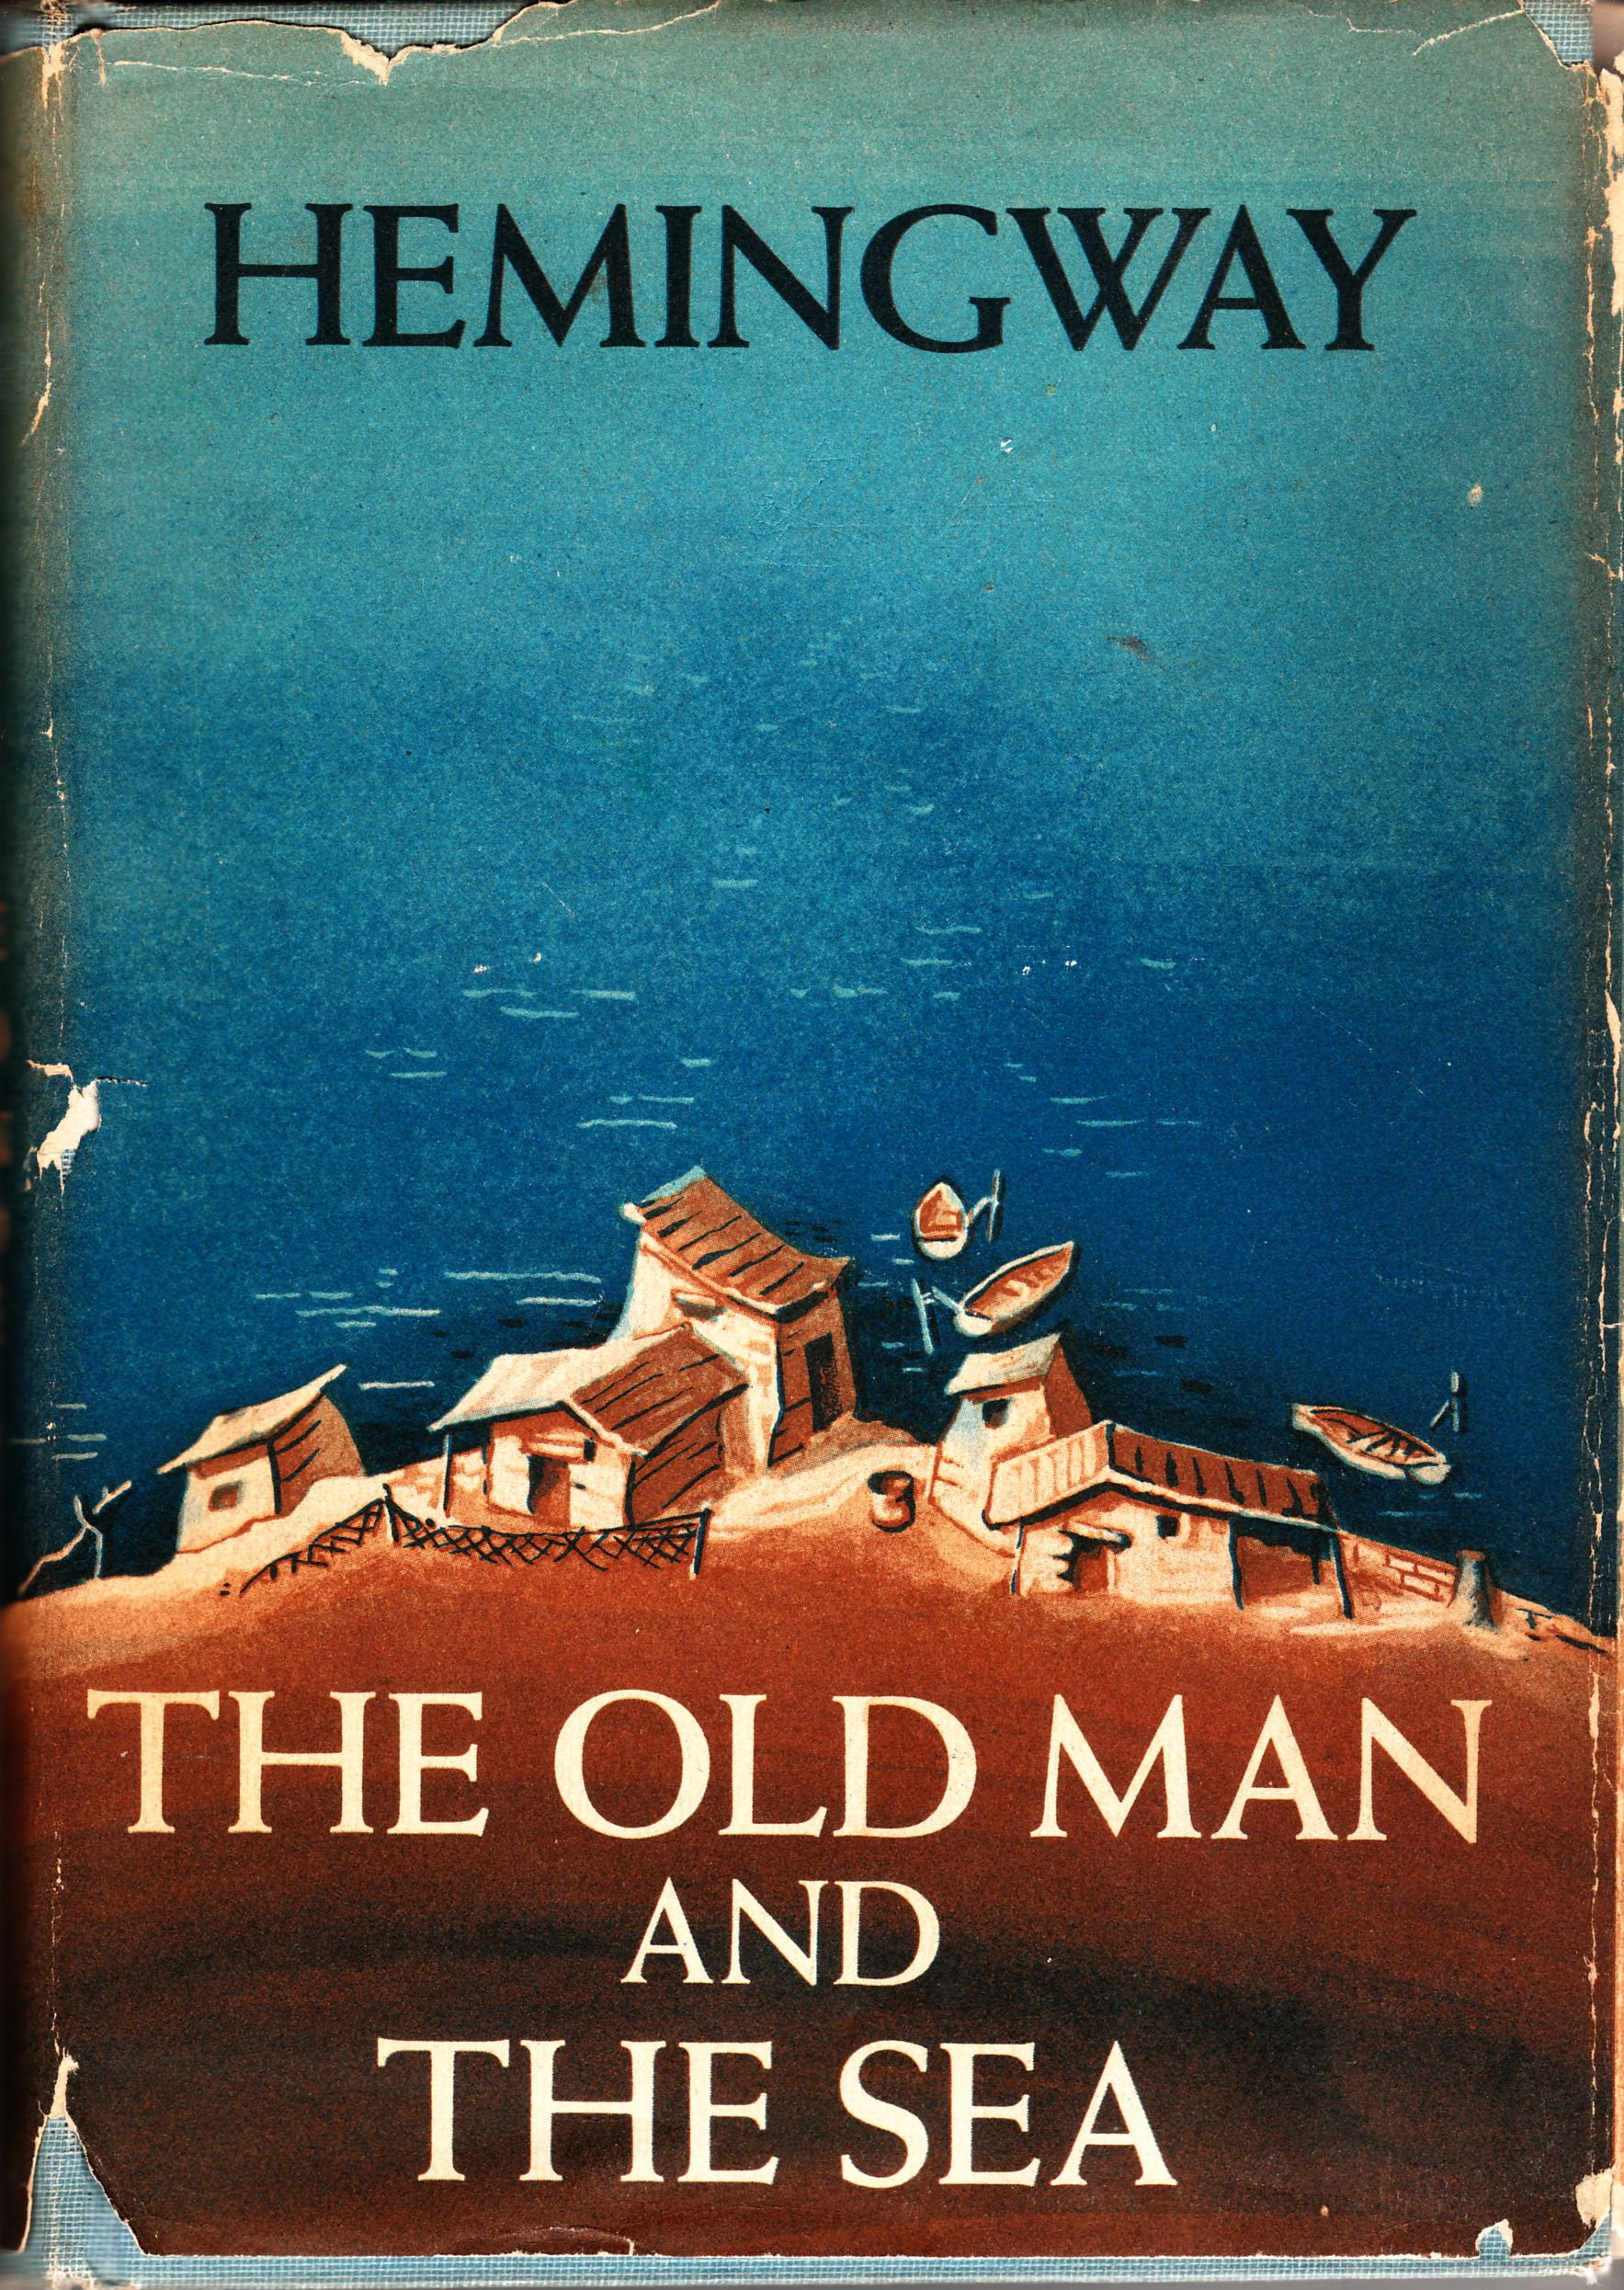 ... old man and the sea summary essay the old man and the sea summary